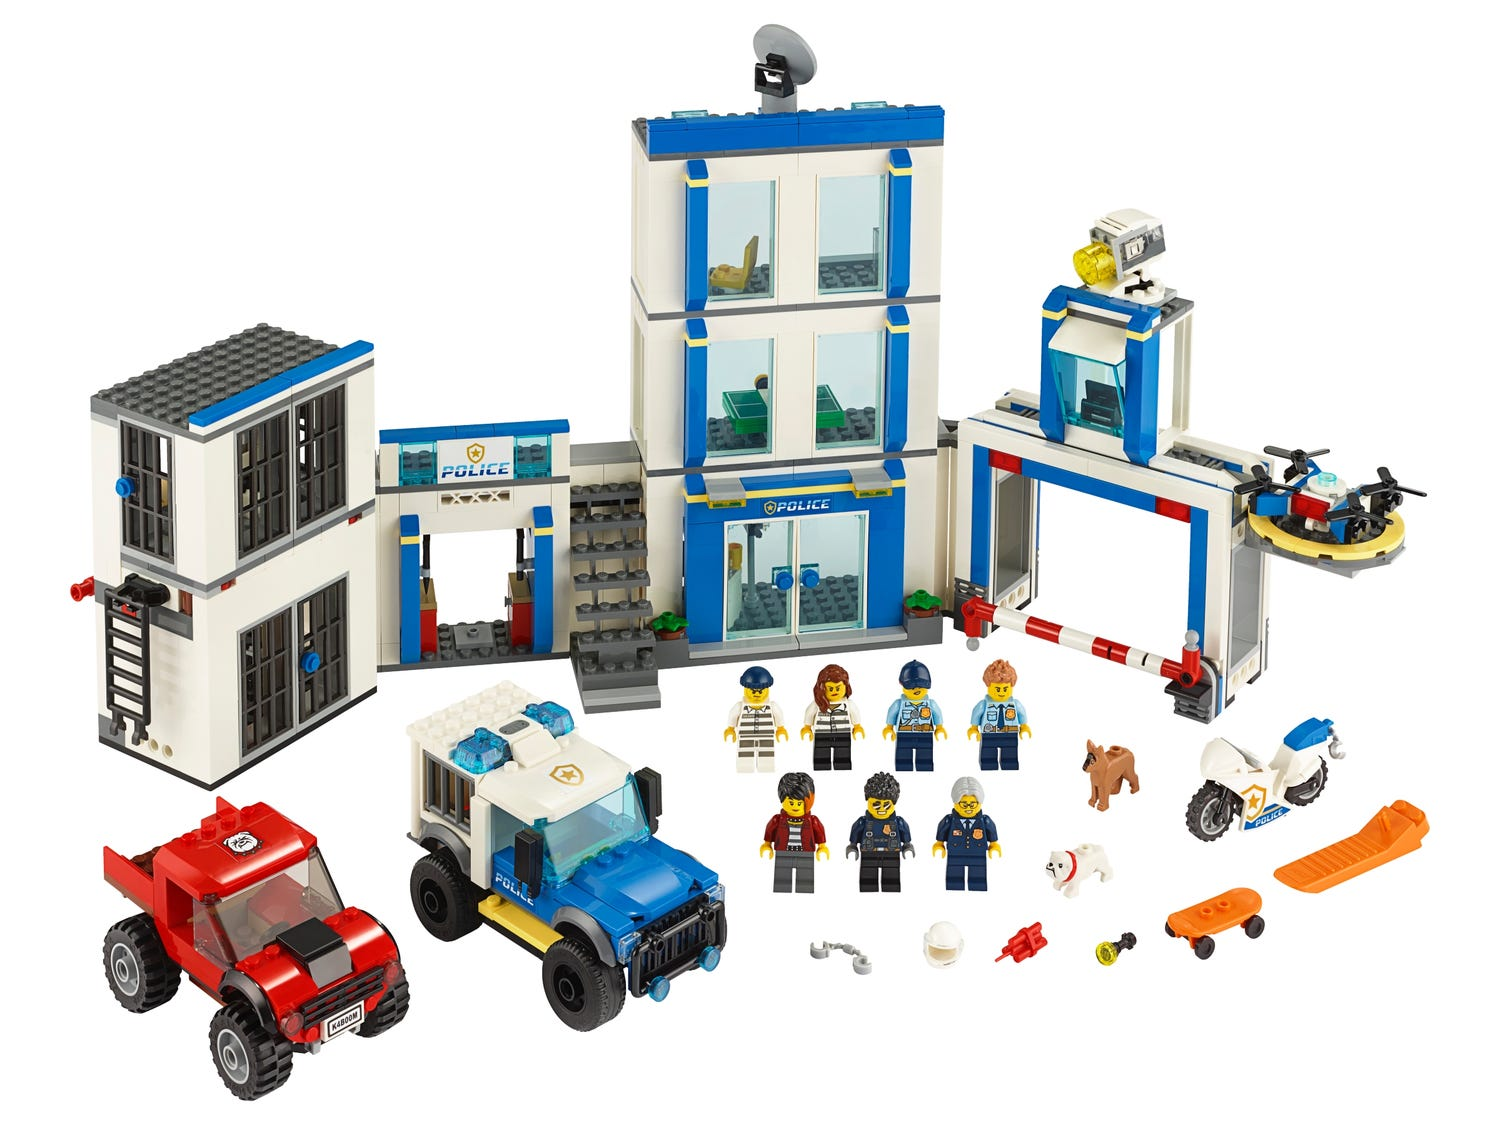 Police Station 60246 City Buy Online At The Official Lego Shop Us